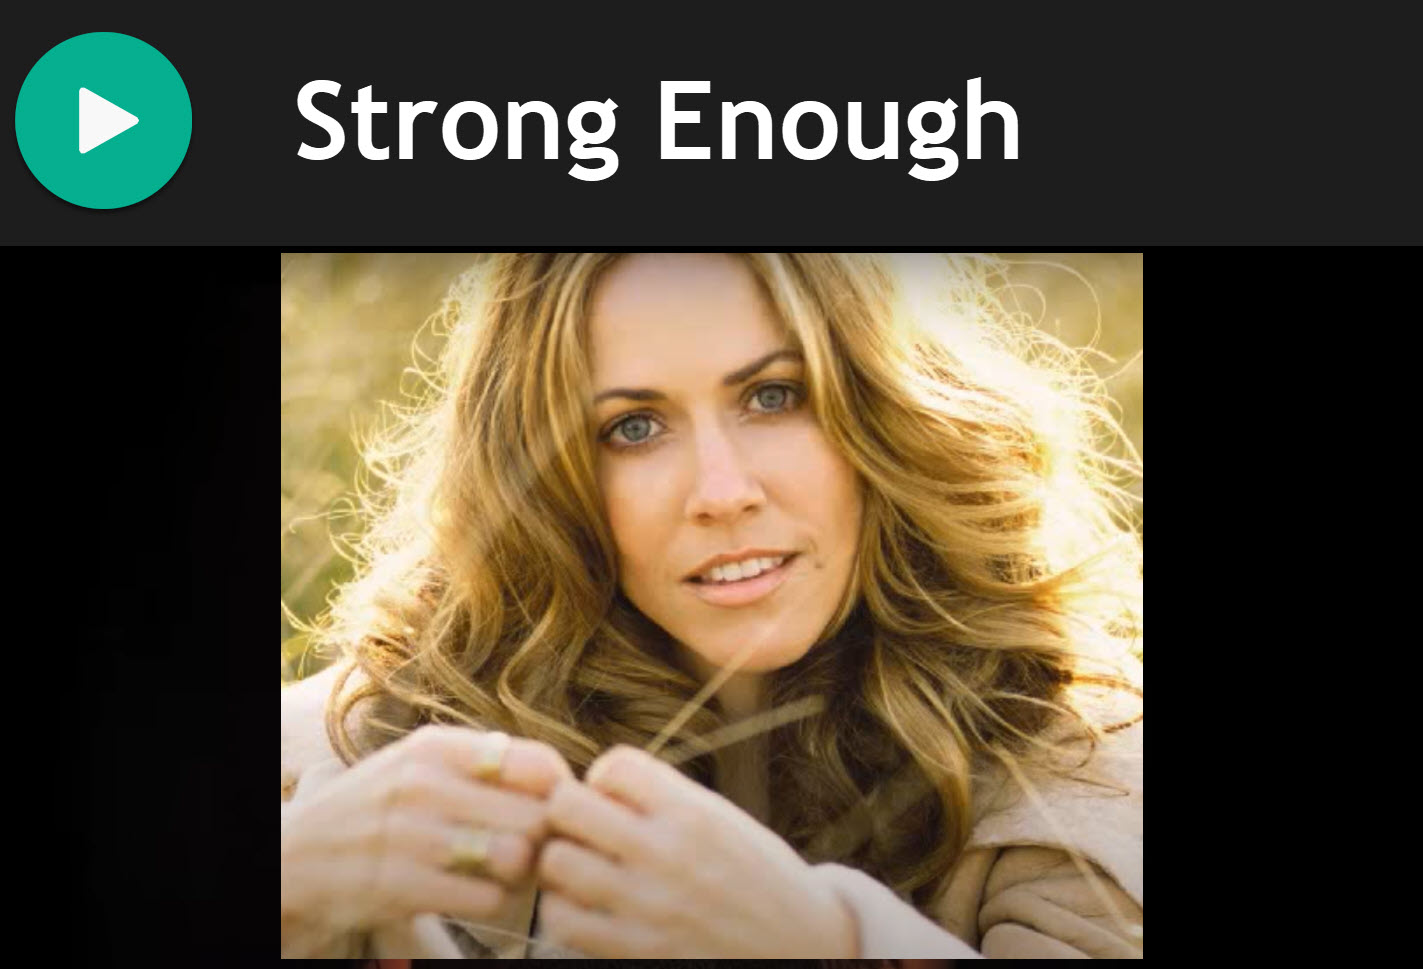 Strong Enough by Sheryl Crowe for Smallpipes